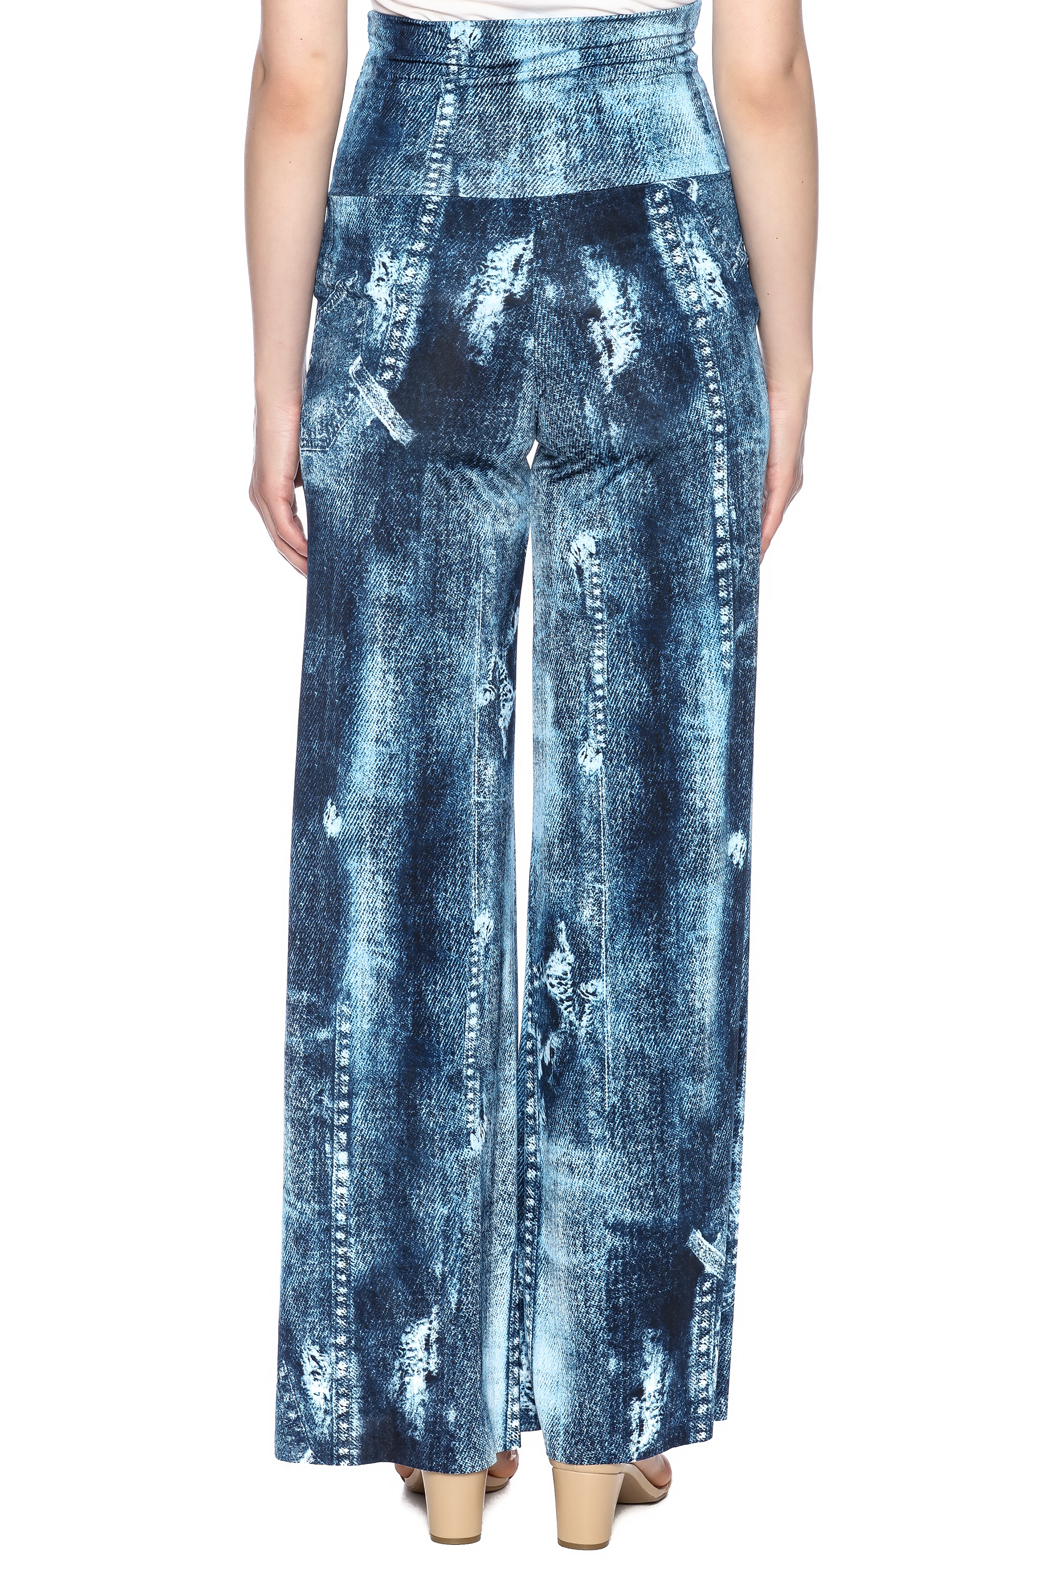 Crystal Art Designs Denim Palazzo Pants - Back Cropped Image